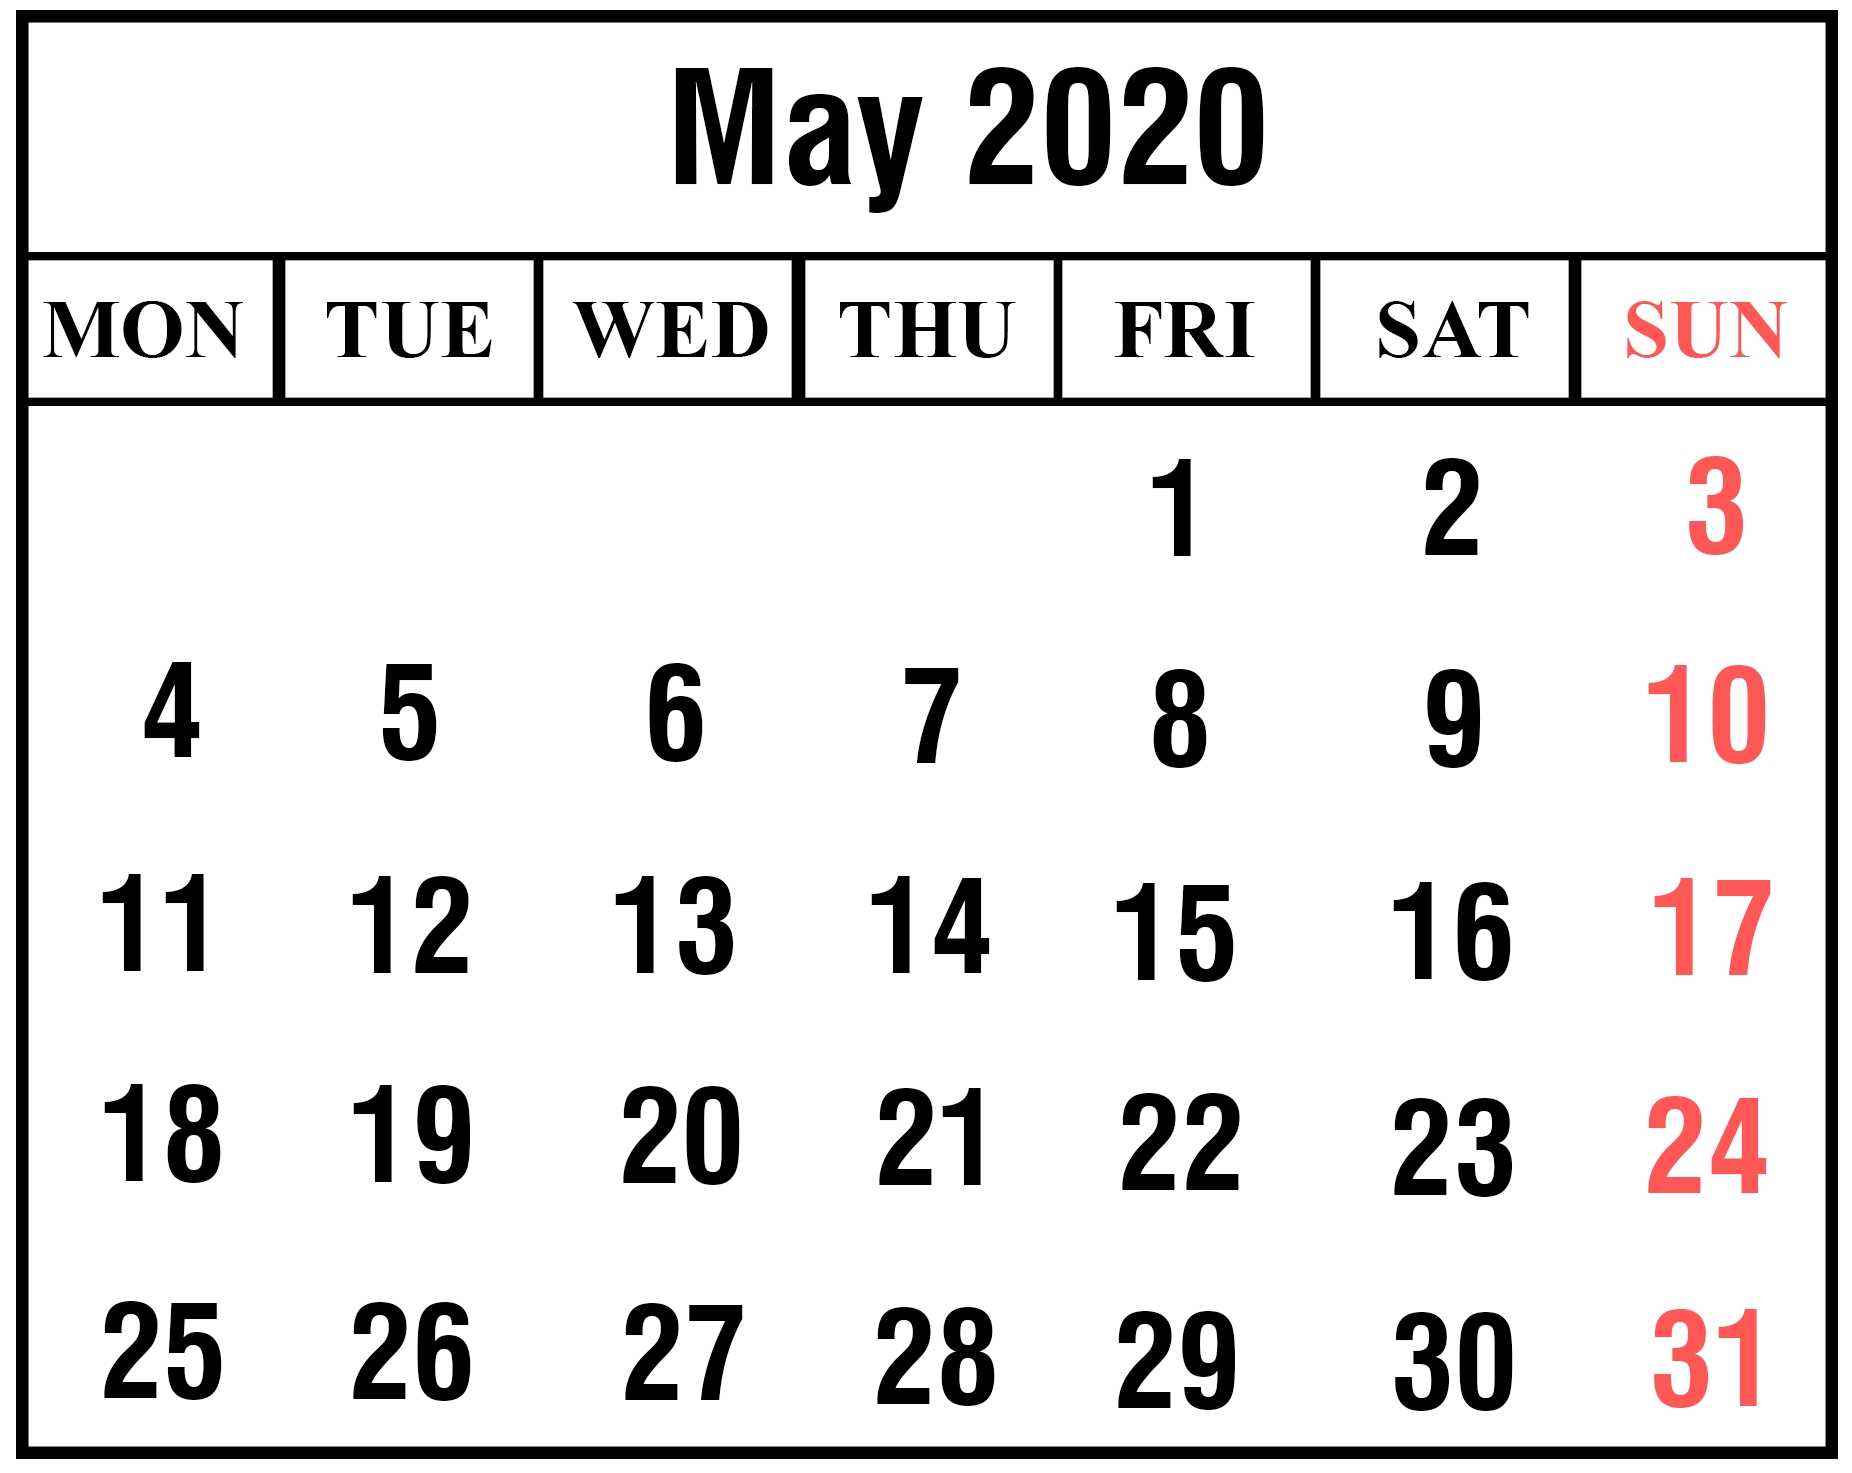 Get May 2020 Calendar With Holidays Printable Template